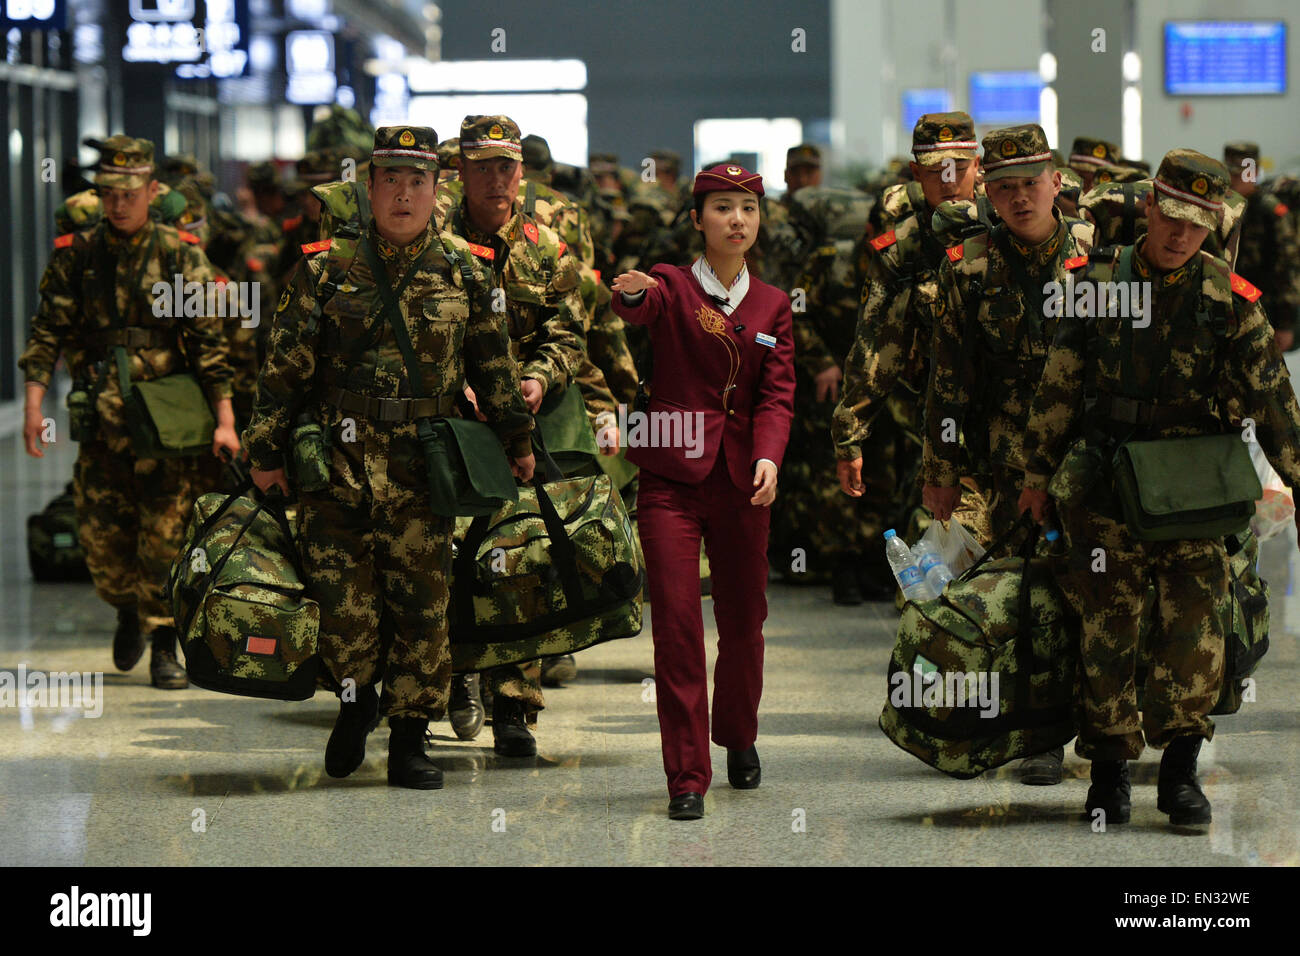 Lanzhou, China's Gansu Province. 27th Apr, 2015. Soldiers walk to board a train at Lanzhou West Railway Station - Stock Image